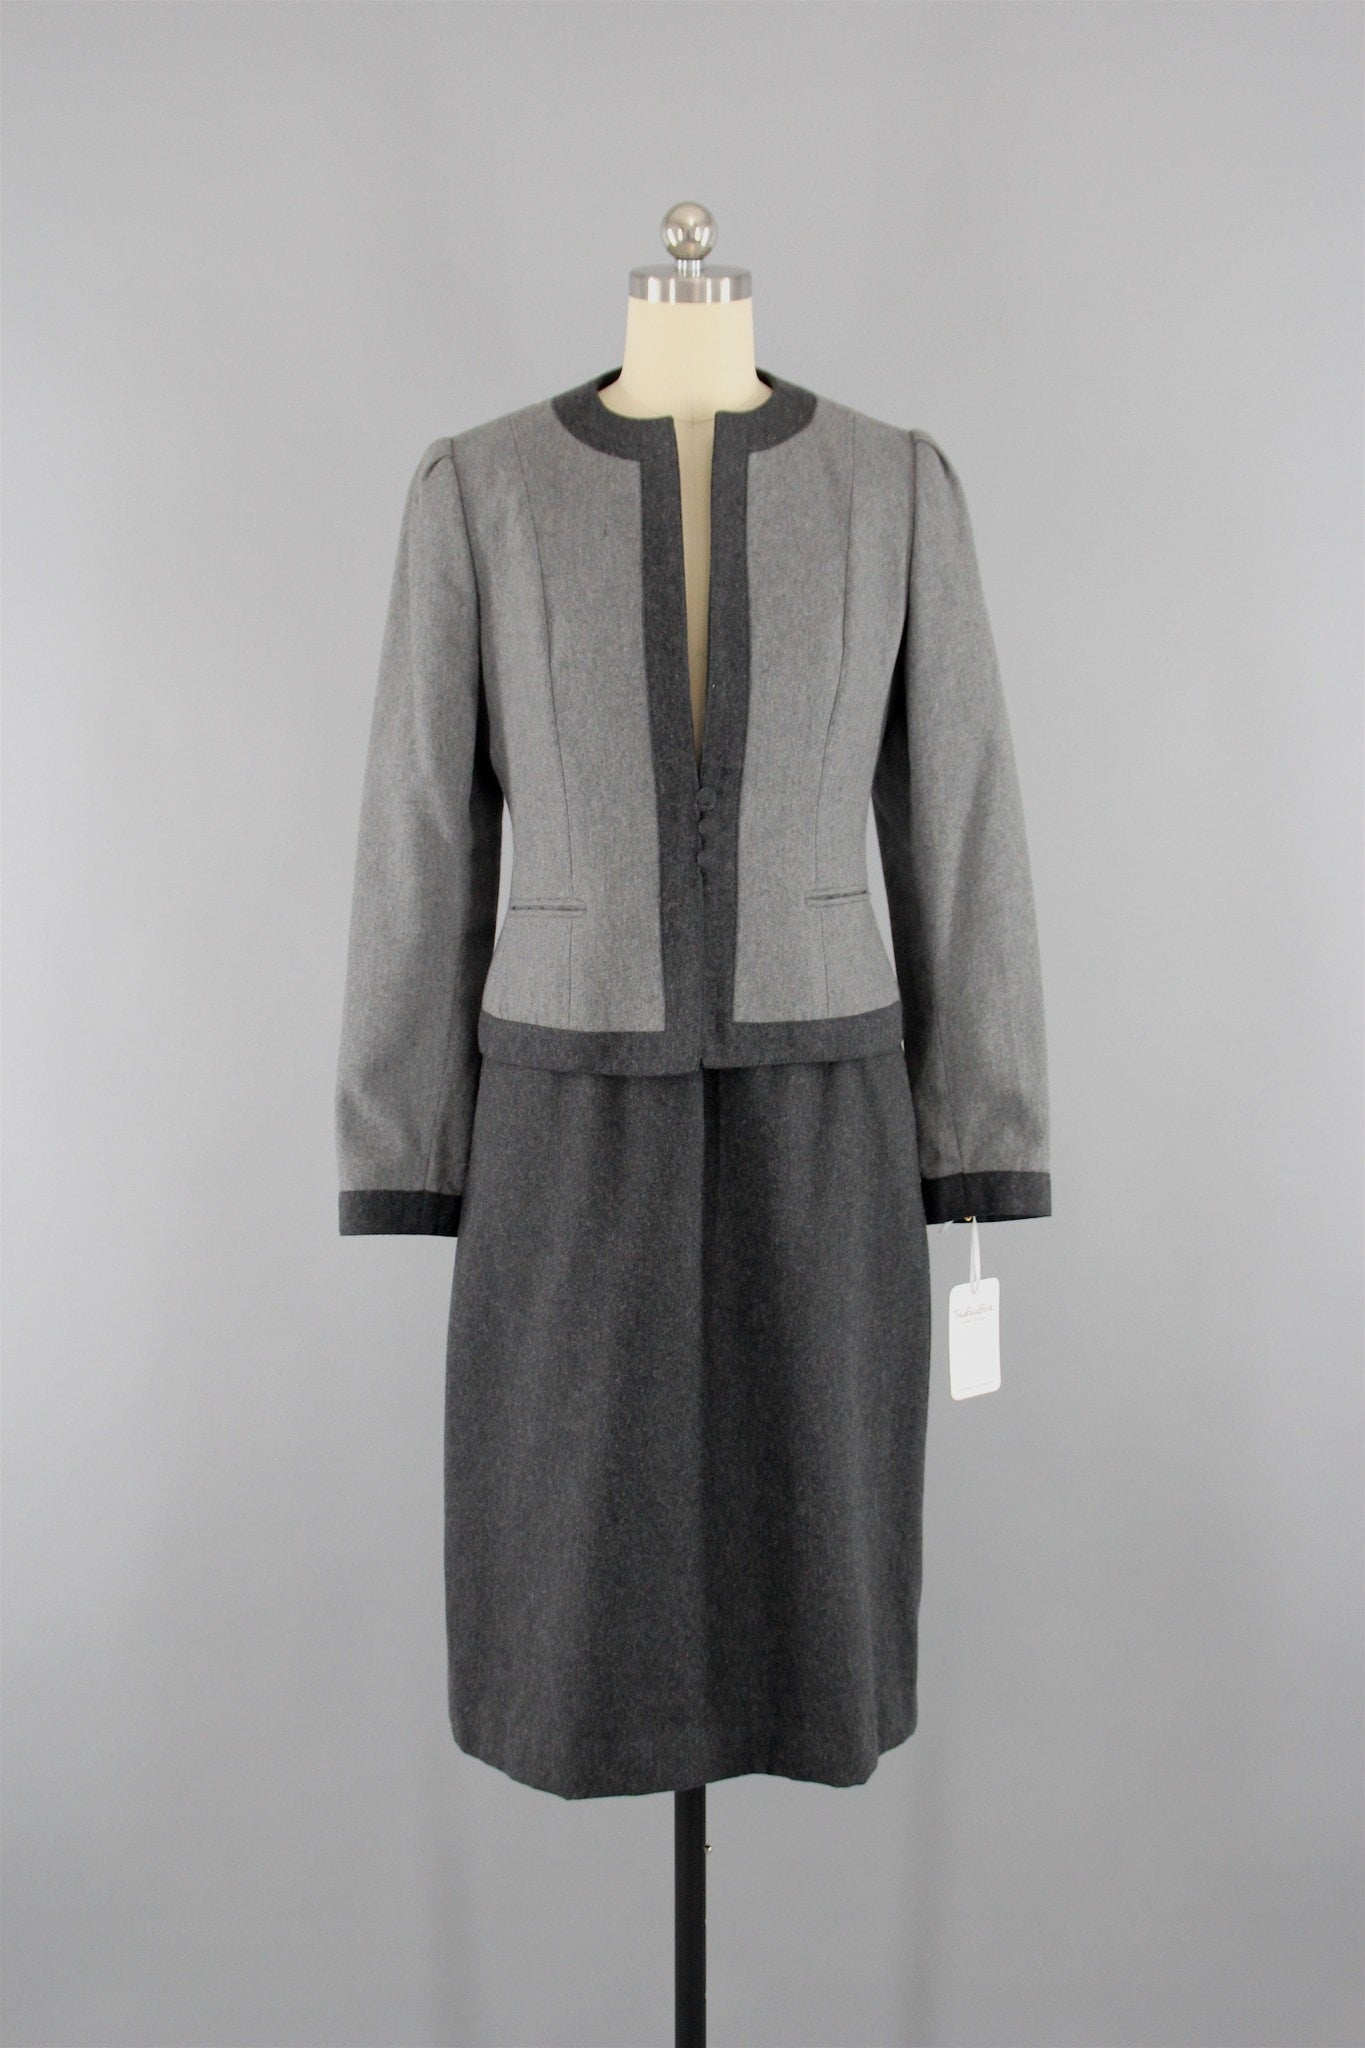 1980s Vintage Sasson Grey Wool Jacket & Skirt Business Suit Dress ThisBlueBird